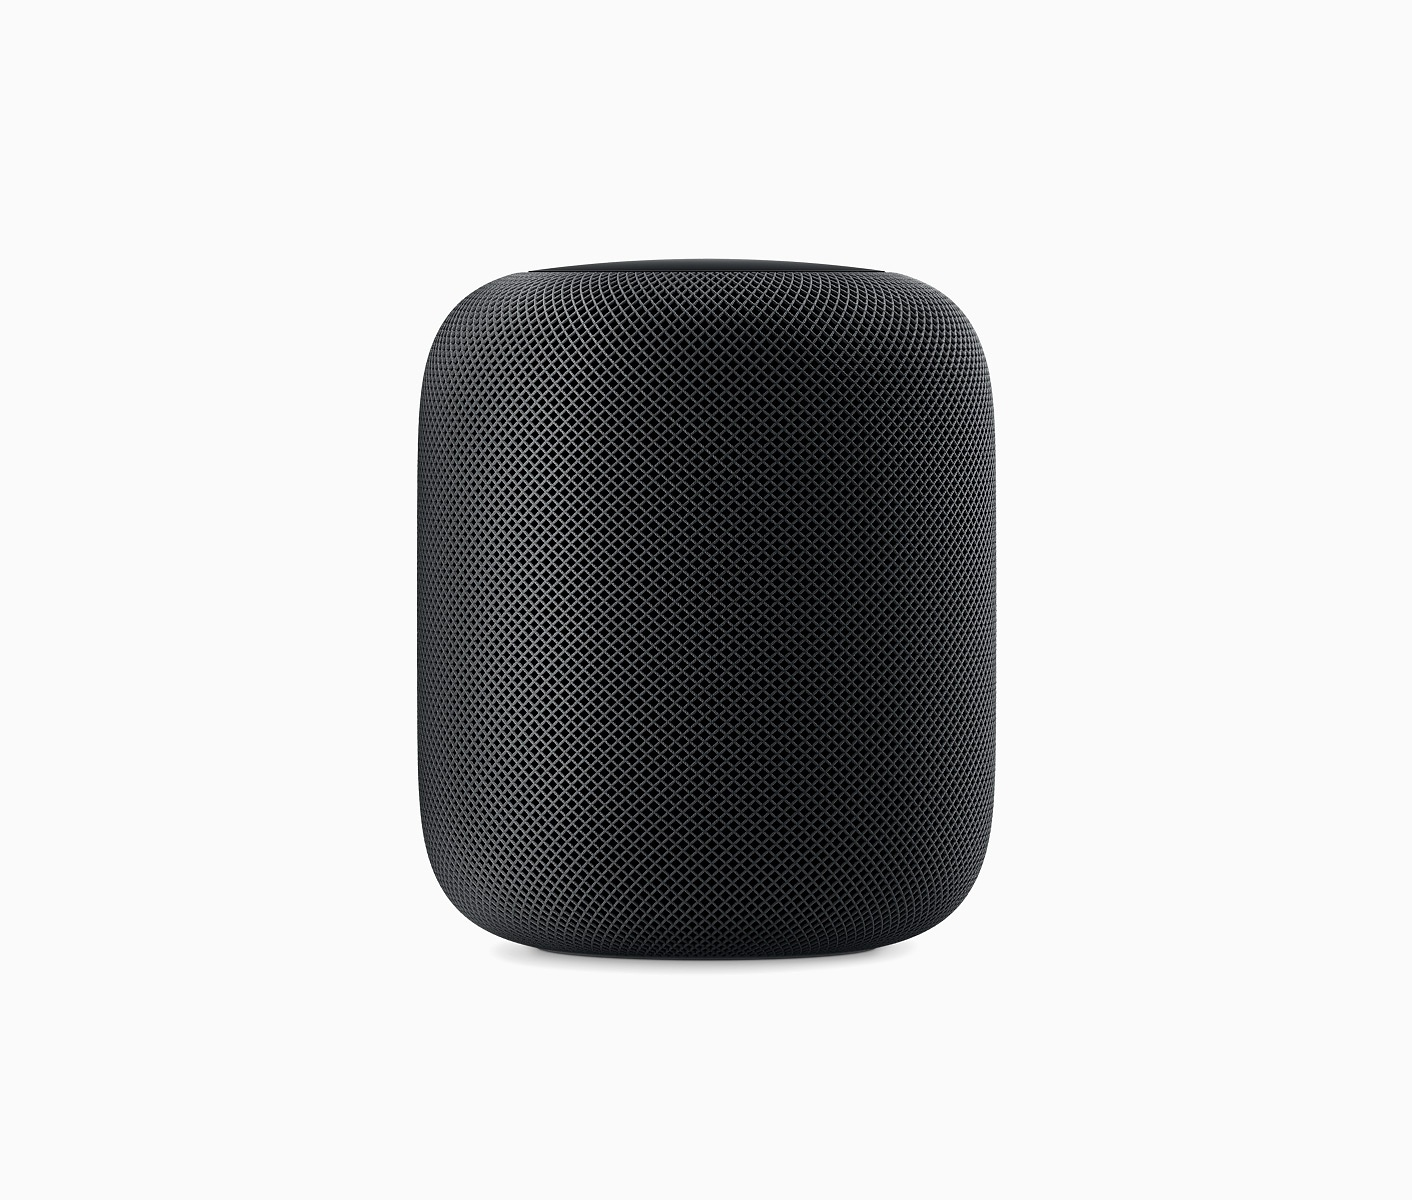 Apple ha venduto 2.6 milioni di HomePod nel Q4 2020